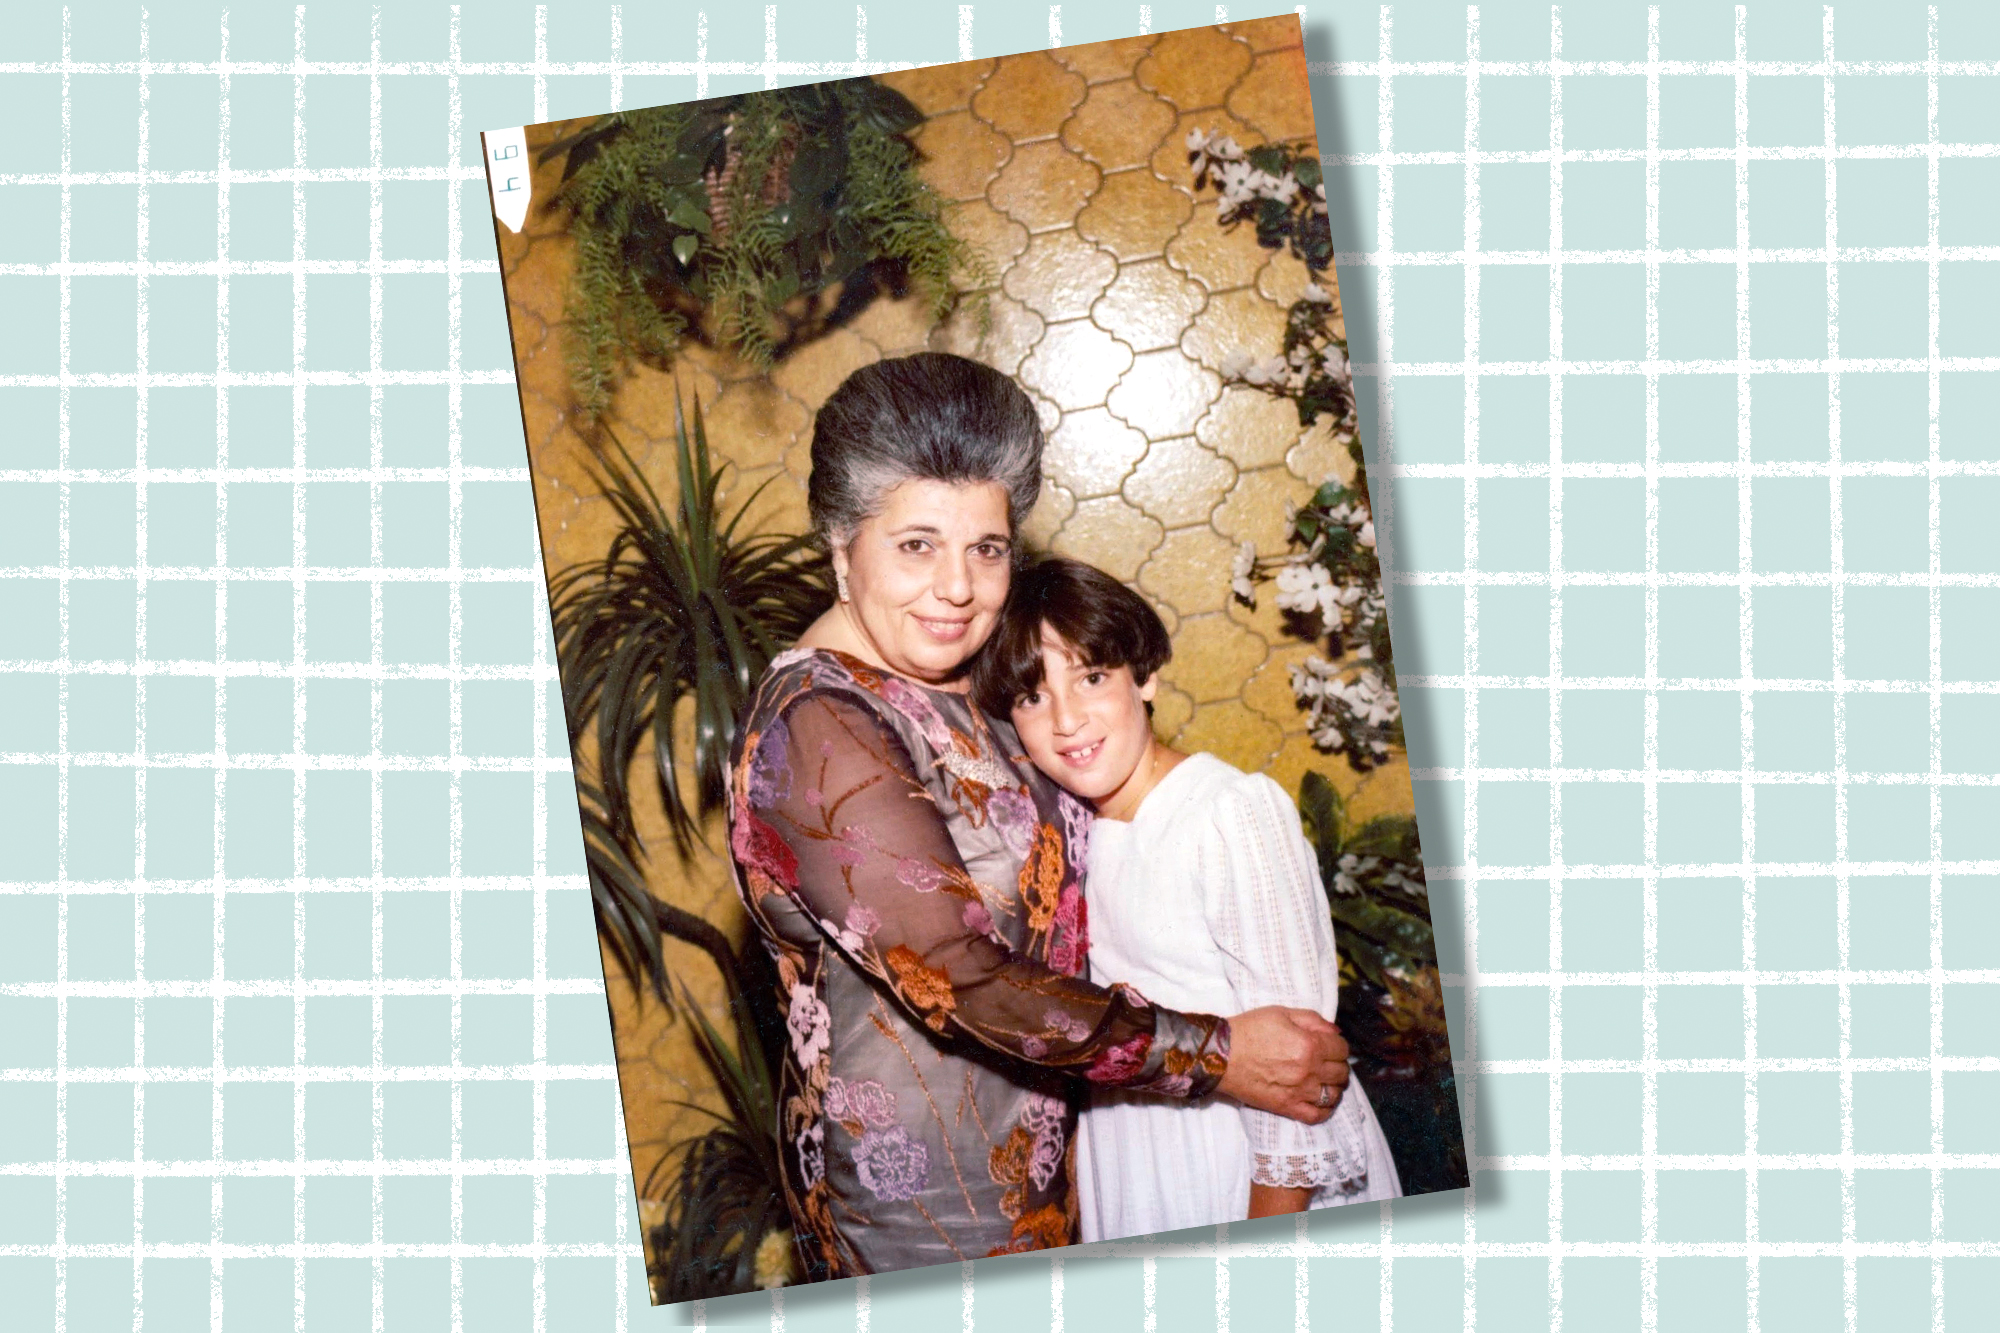 A portrait of an older woman and young child on a designed background